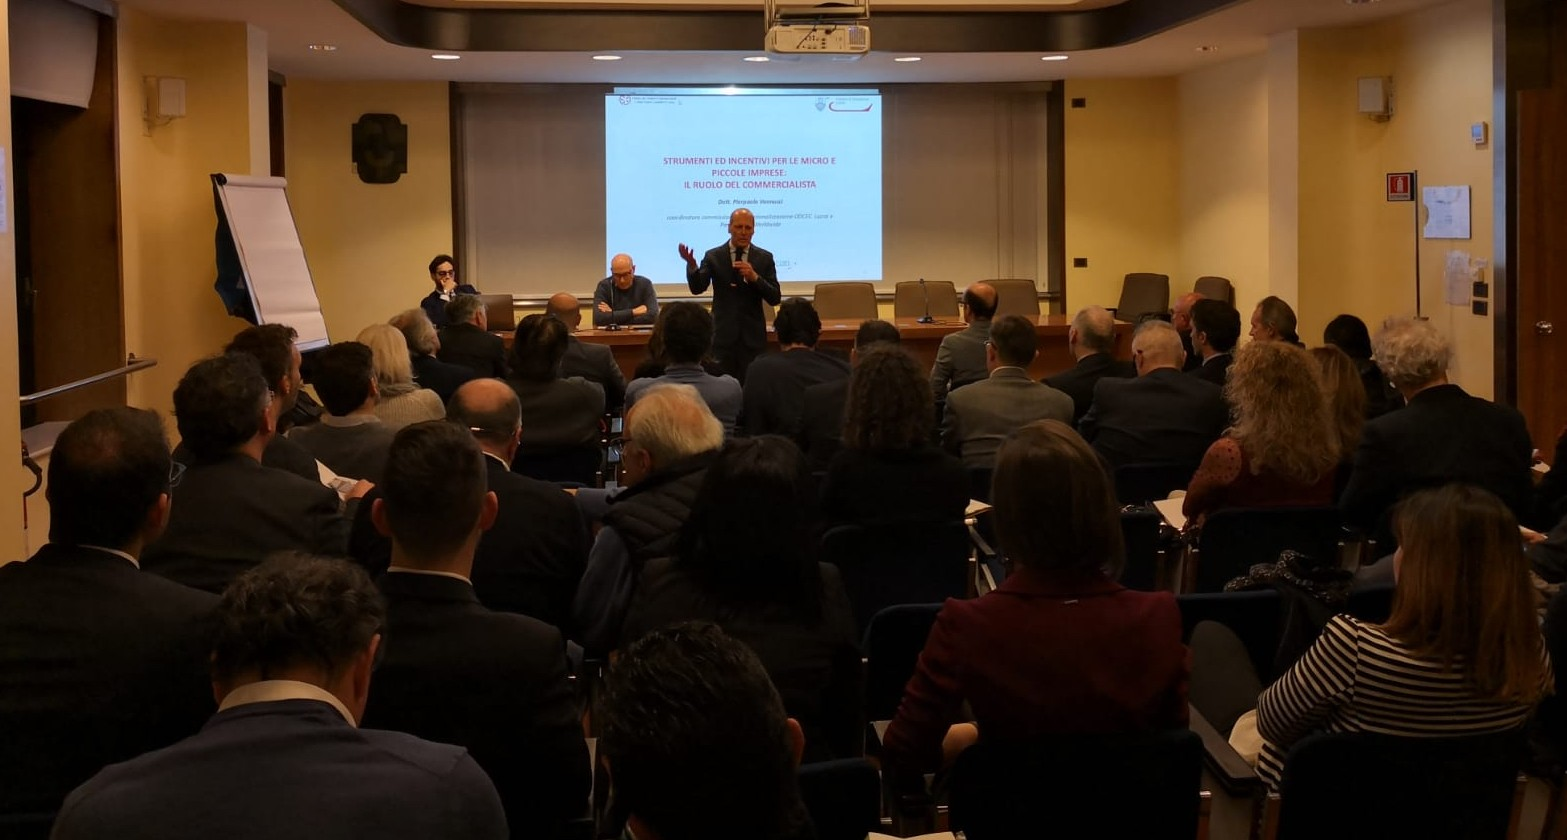 Italian SMEs companies go international. A conference featuring pragmatic pointers on how to do it effectively.